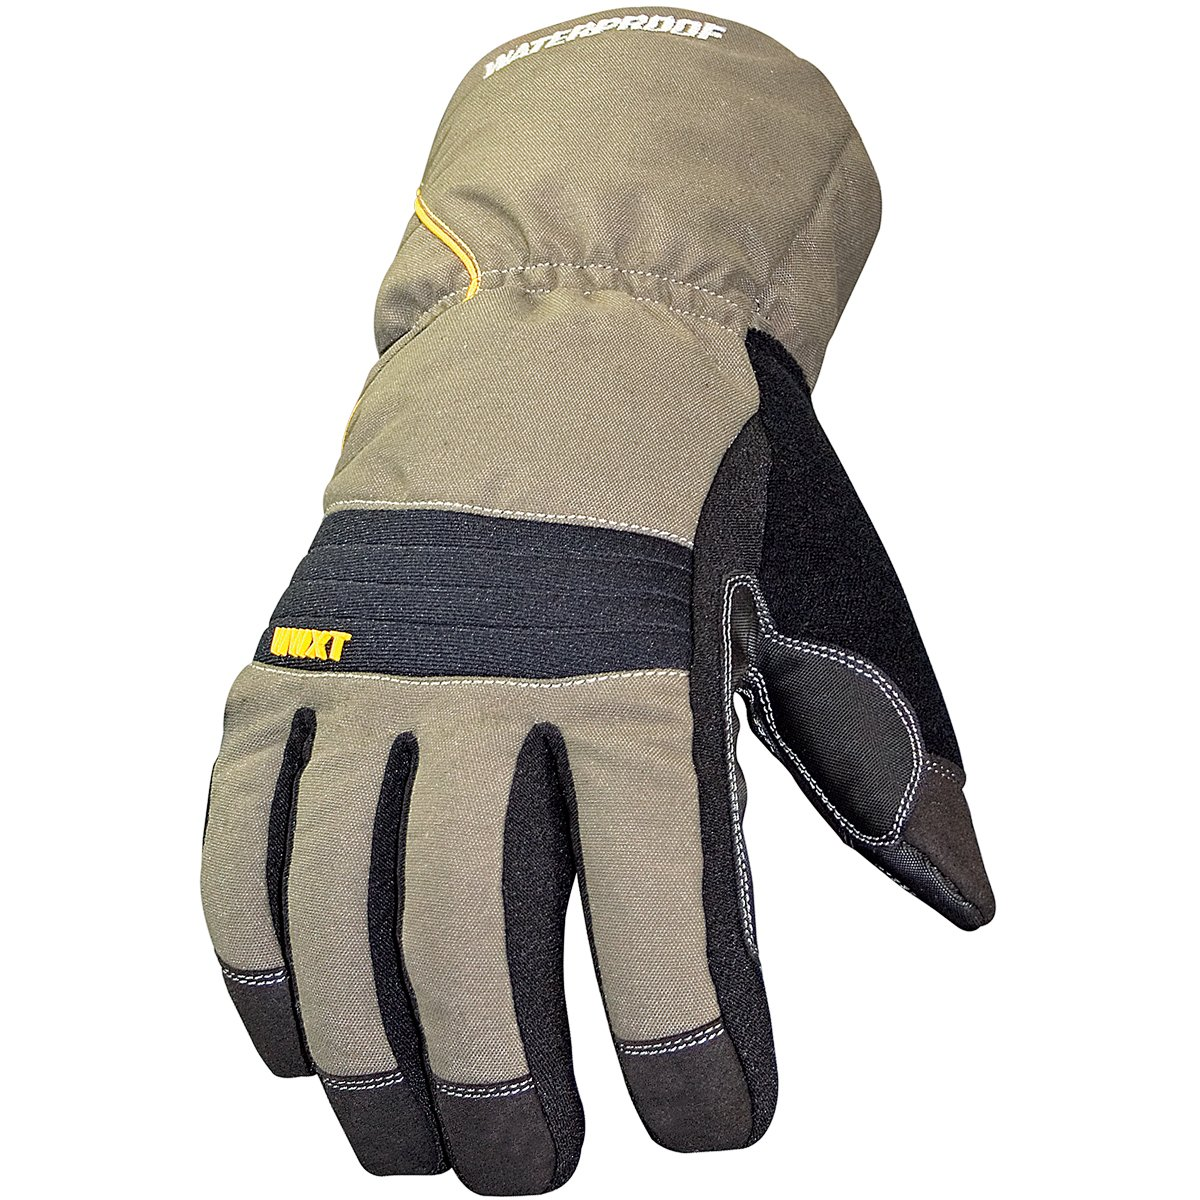 Youngstown Glove 11-3460-60-M Waterproof Winter XT 200 gram Thinsulate Waterproof Glove, Olive and Black, Medium by Youngstown Glove Company